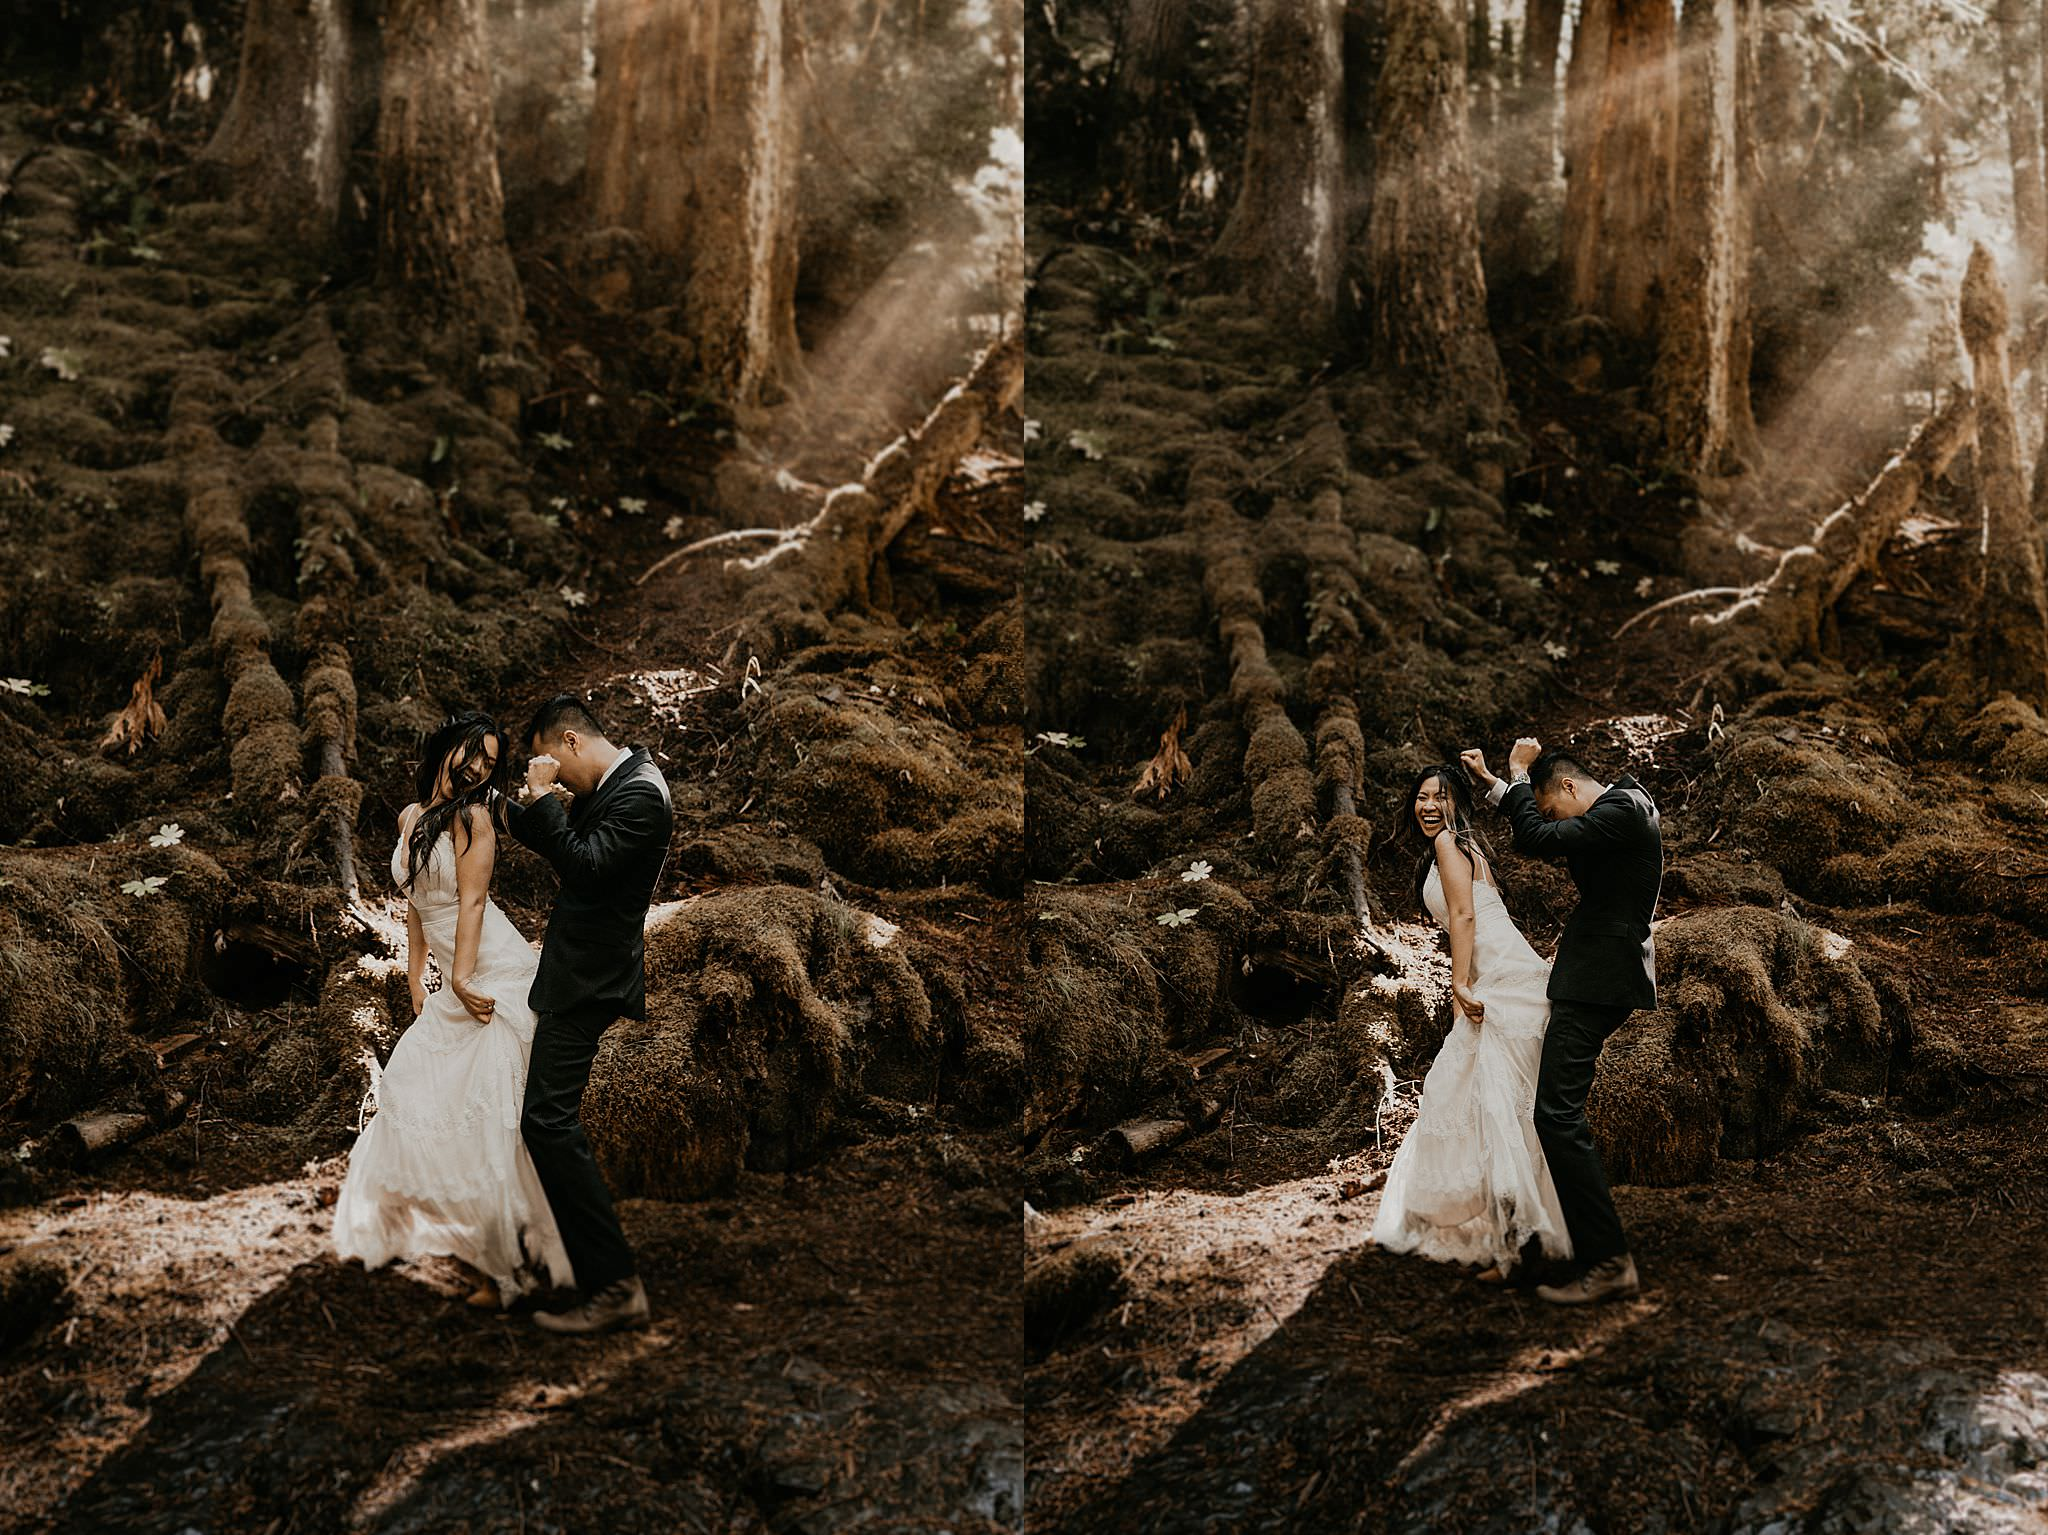 pnw-forest-waterfalls-elopement_0072.jpg